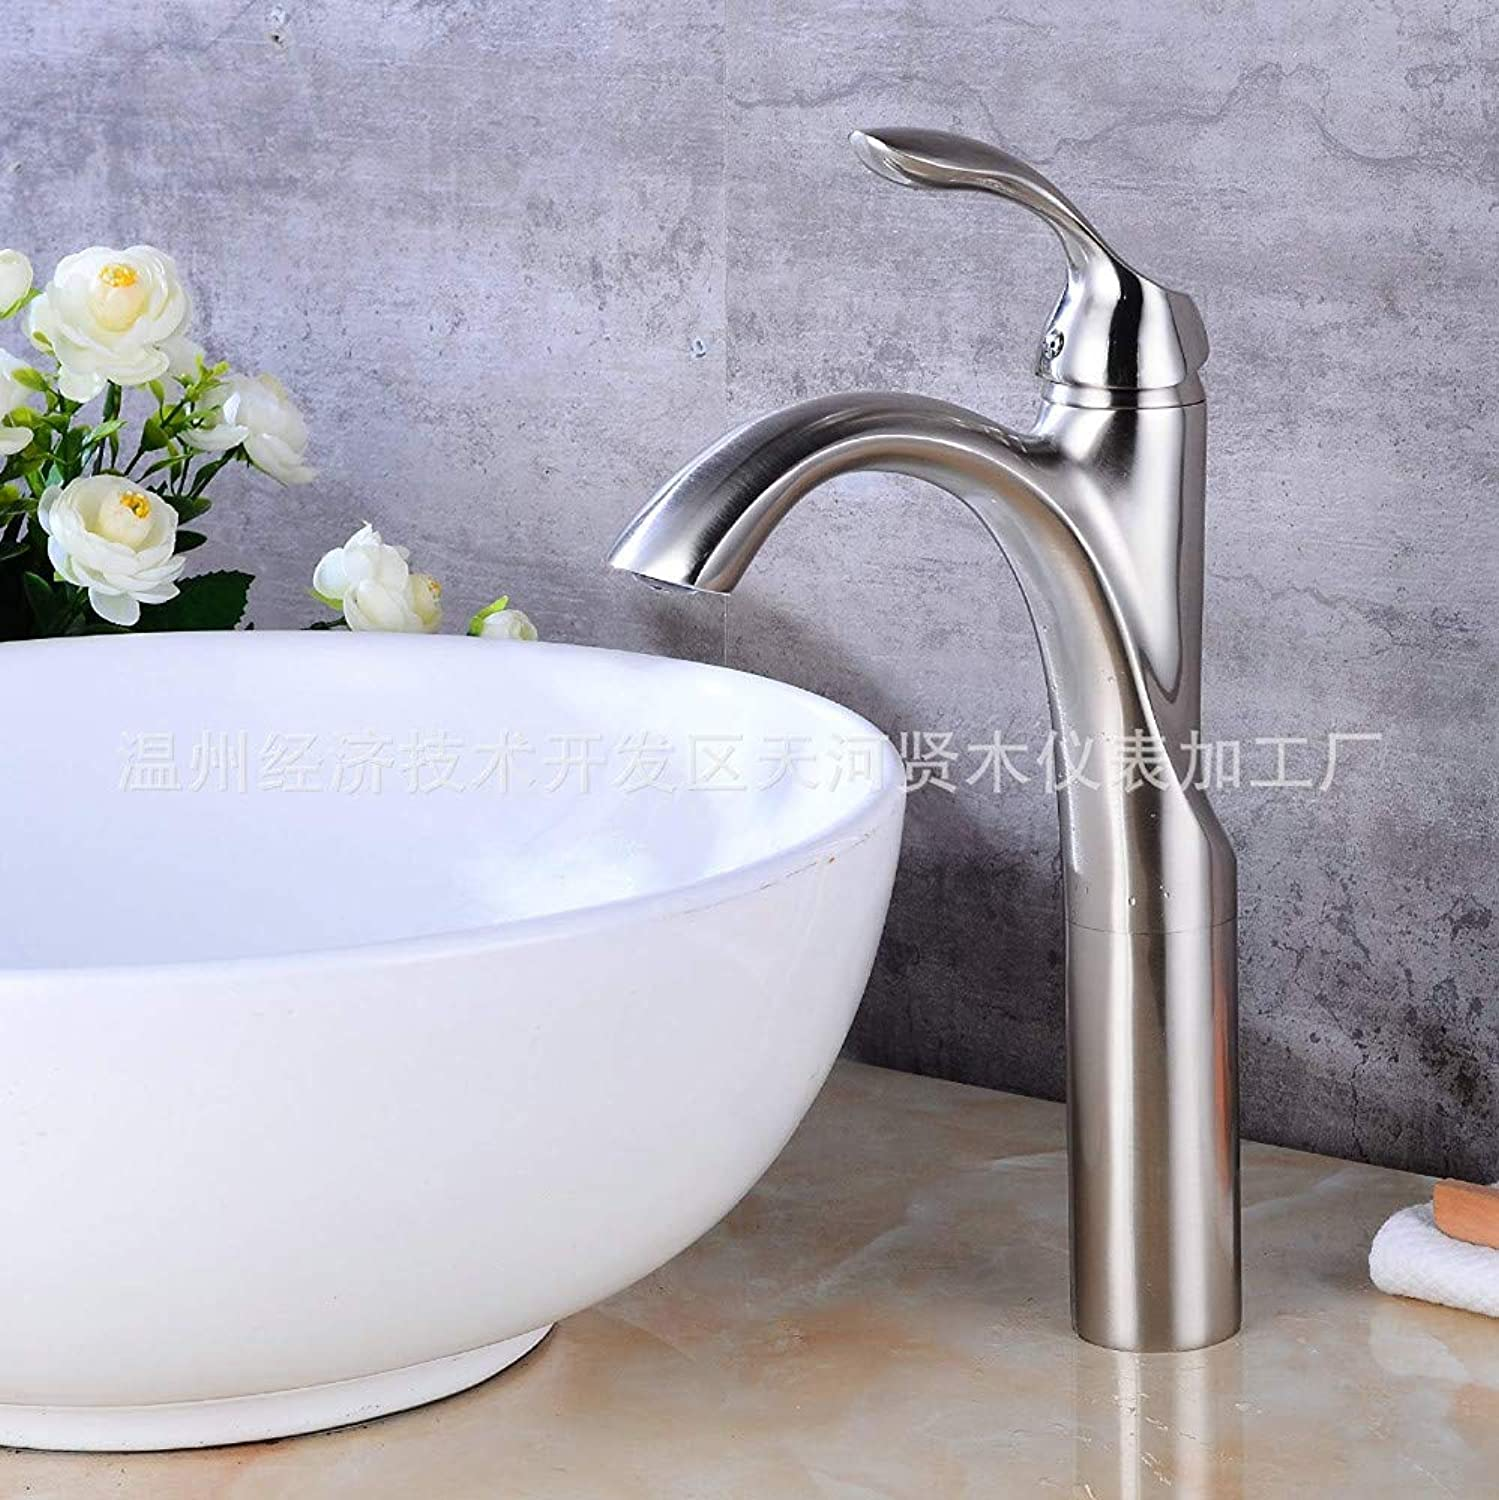 Water Tapsingle Hole Hot and Cold Modern Taps Kitchen Brass Faucet Bathroom Sink Basin Waterfall Tap Mixer Water Washroom Bath Tub Shower